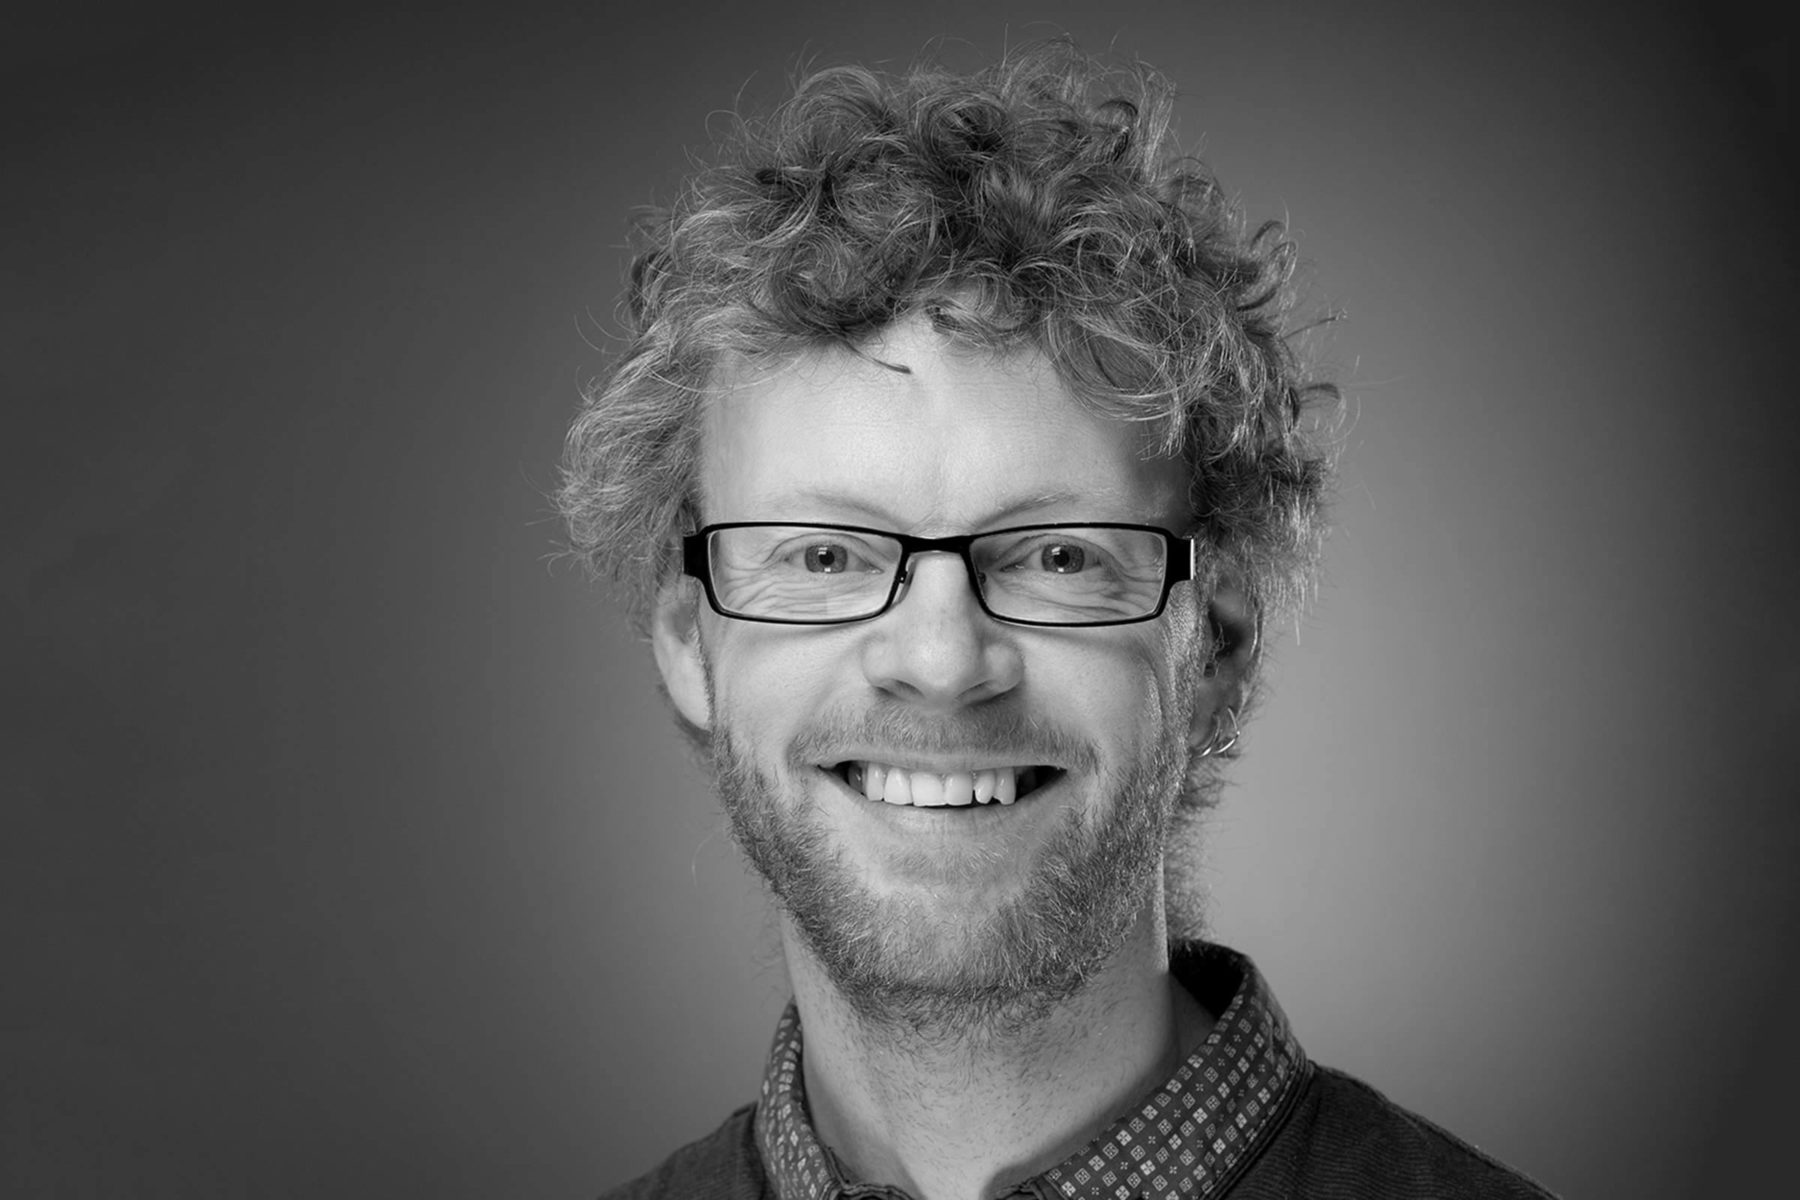 Black and white portrait headshot of man smiling with glasses beard curly hair